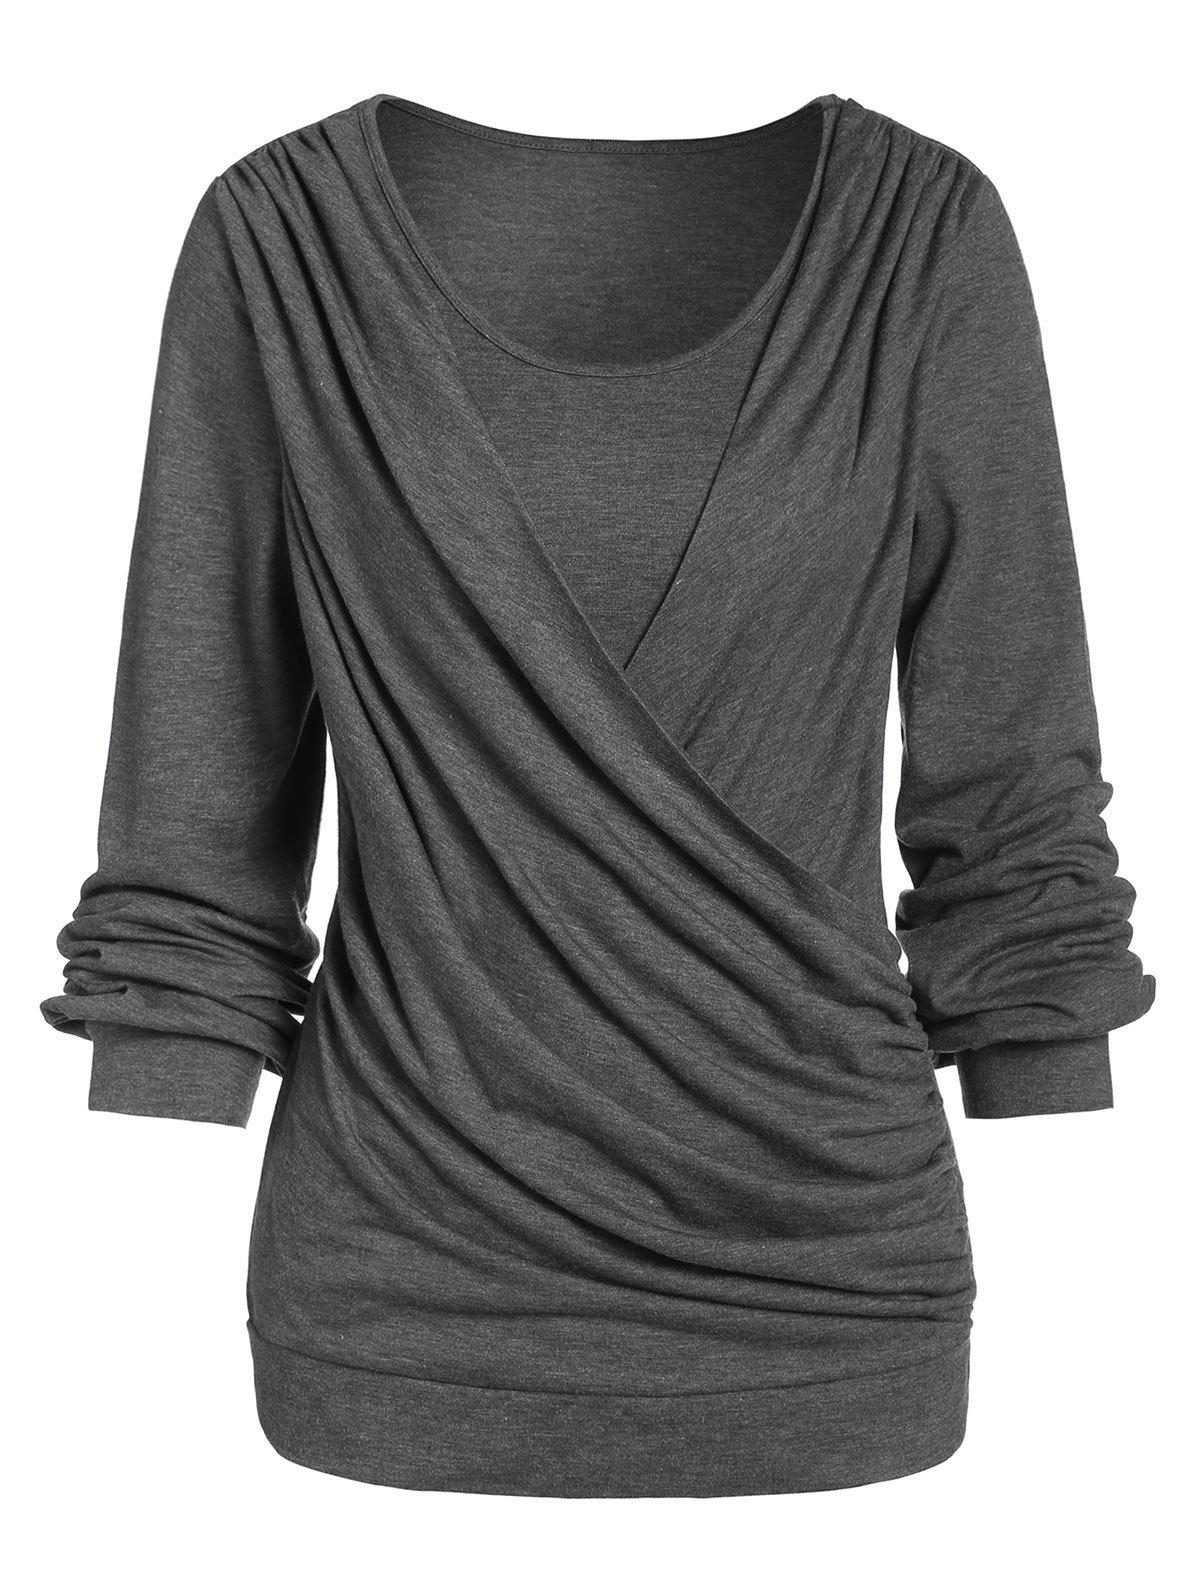 Long Sleeve Round Collar Marled T Shirt - CLOUDY GRAY L